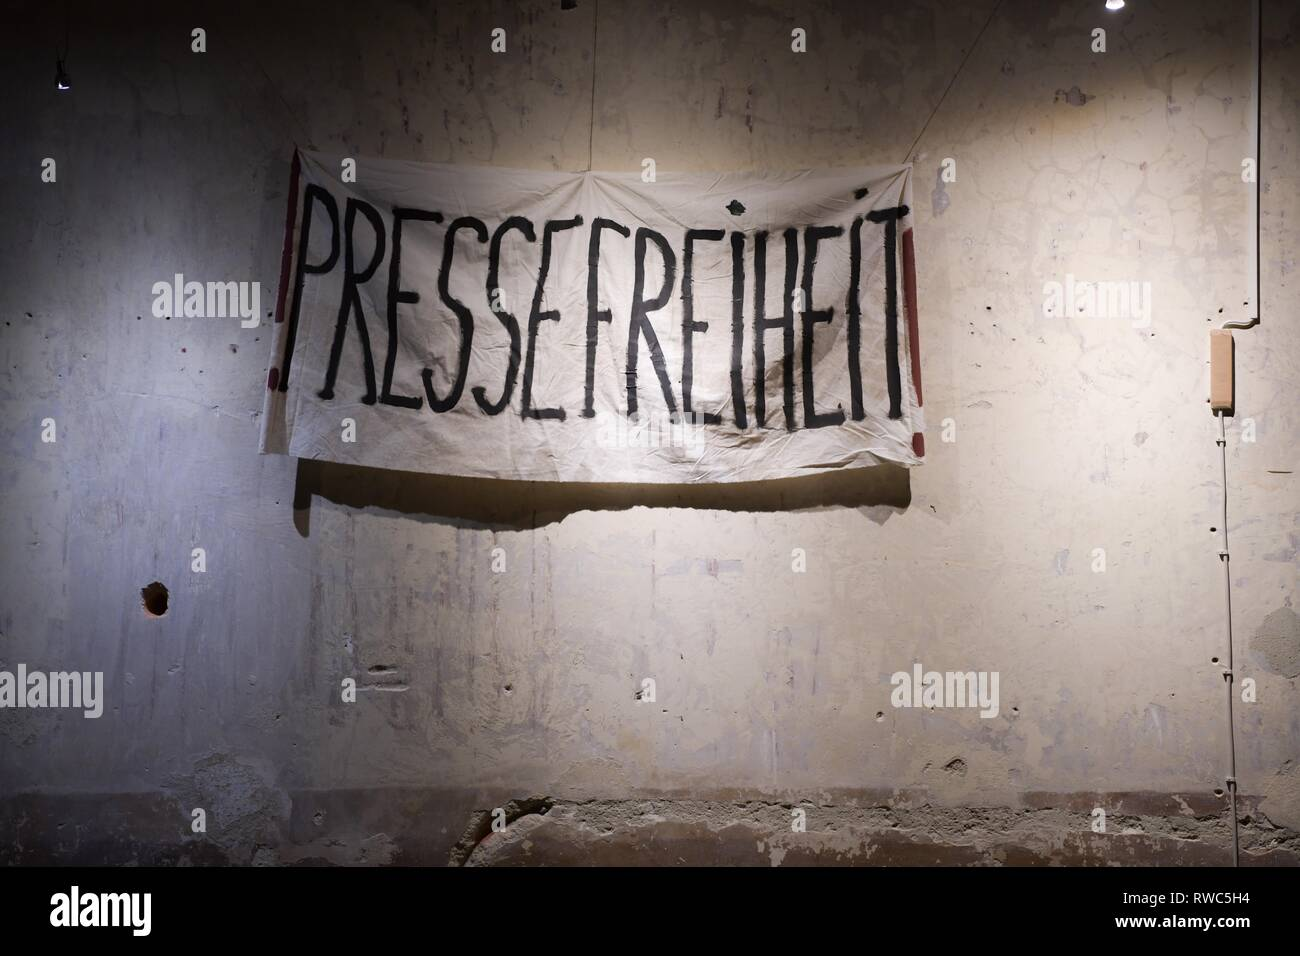 Berlin, Germany. 05th Mar, 2019. A banner with the inscription 'Pressefreiheit' can be seen during the shooting of the historical ZDF three-part film 'The Wall' in the Gethsemanekirche. The three-part film will be broadcast on ZDF in autumn to mark the anniversary of the fall of the Berlin Wall and tells the story of the fall of the Berlin Wall from the perspective of three sisters. Credit: Jörg Carstensen/dpa/Alamy Live News - Stock Image